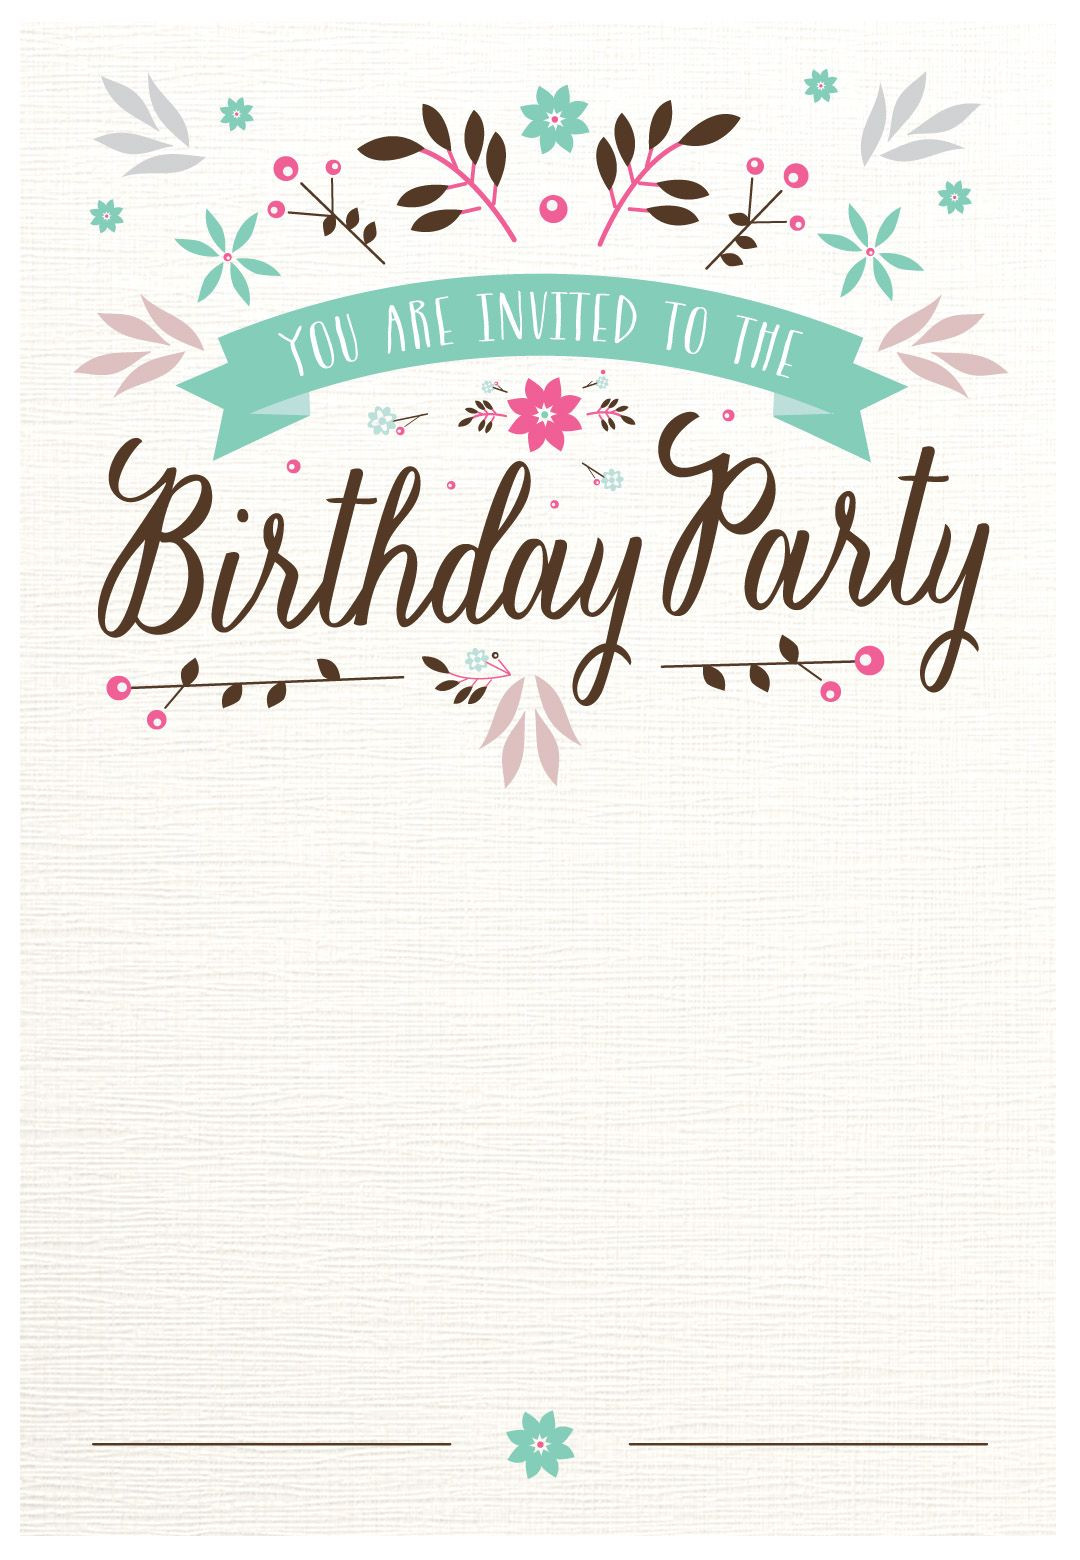 Birthday Invitations Template  Flat Floral Free Printable Birthday Invitation Template